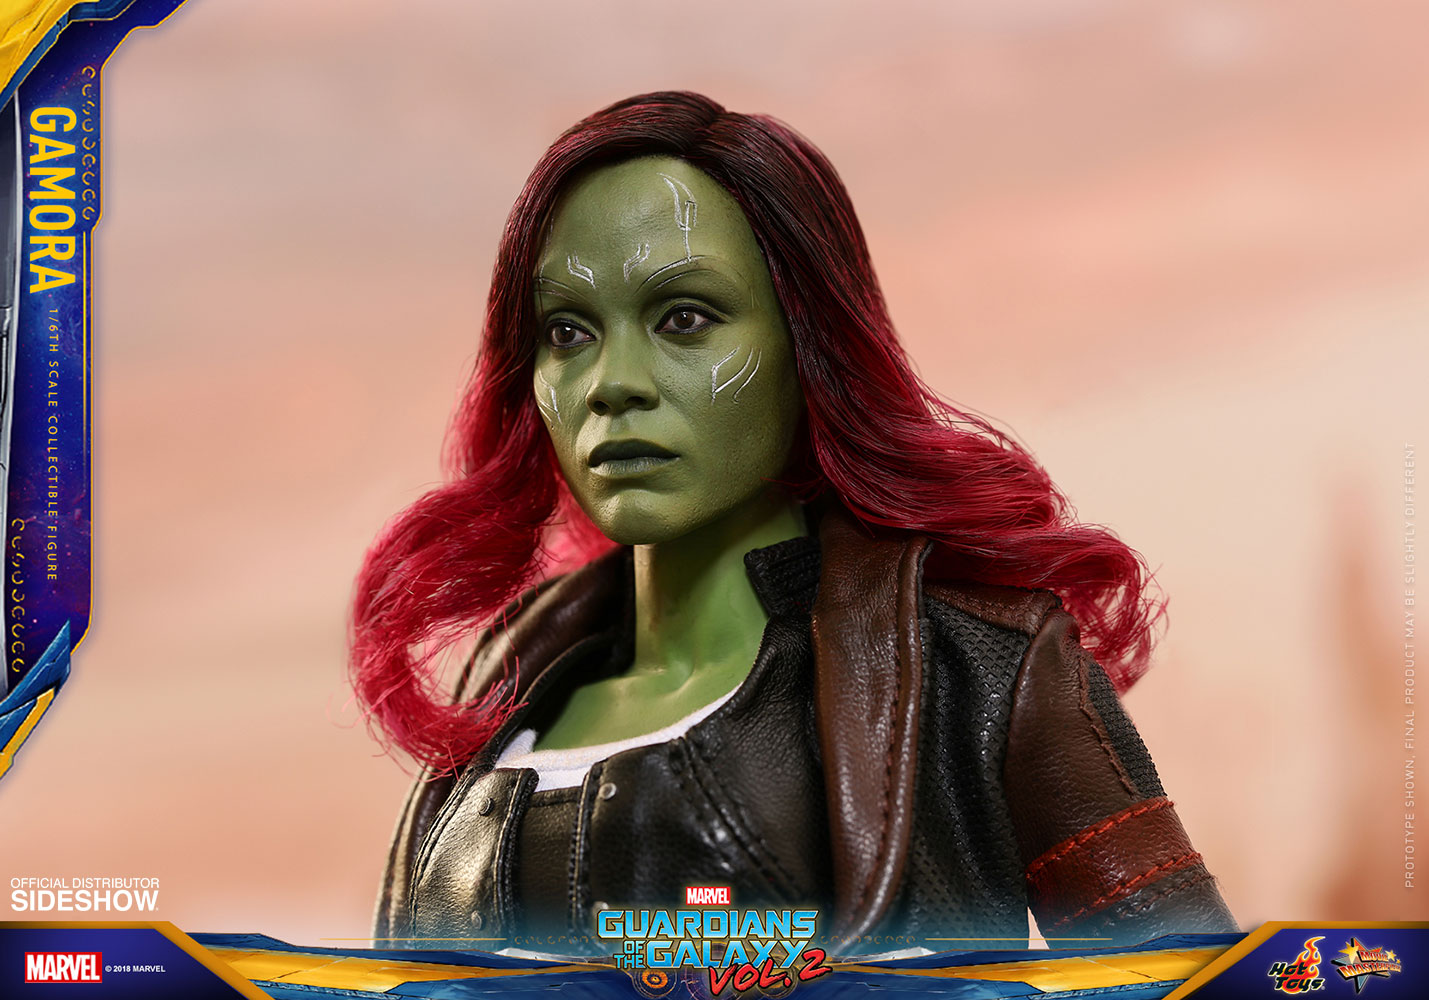 marvel-guardians-of-the-galaxy-vol2-gamora-sixth-scale-figure-hot-toys-903101-23